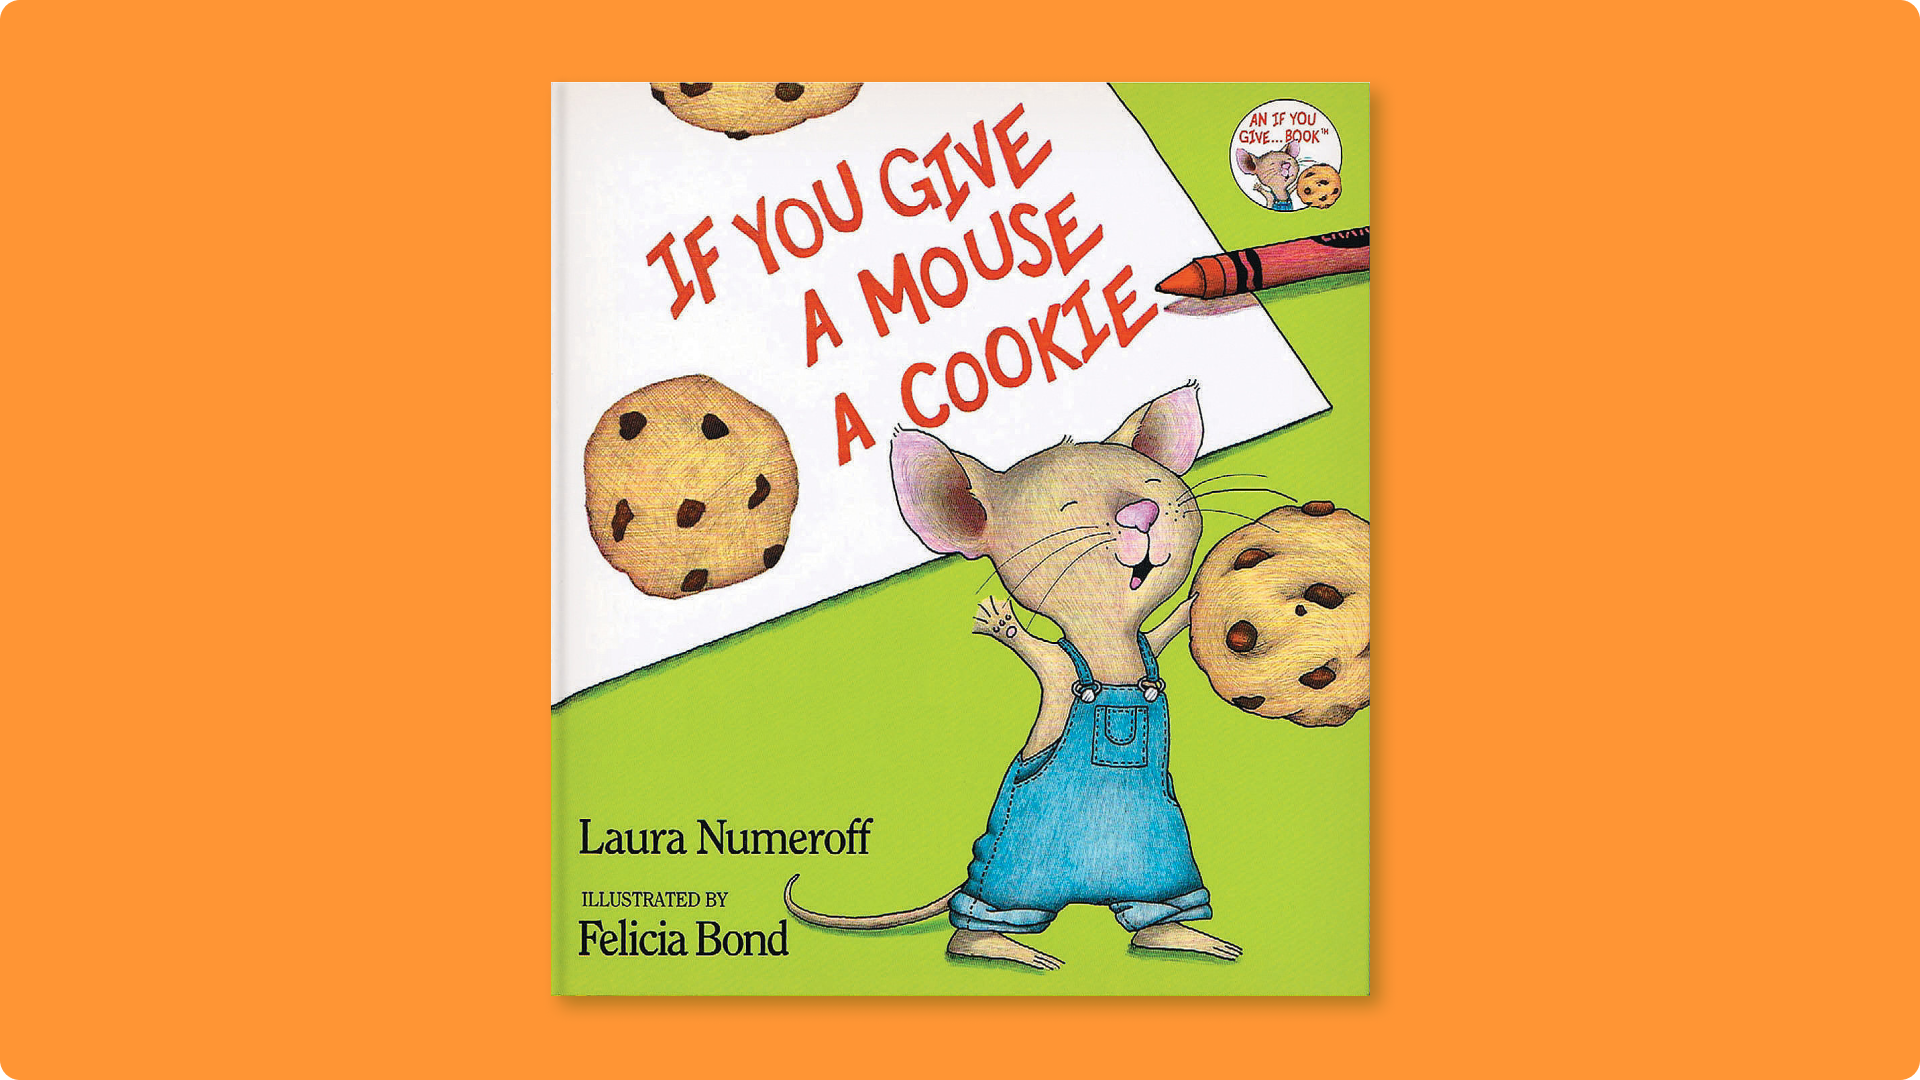 Cover art of Laura Numeroff's If You Give a Mouse a Cookie